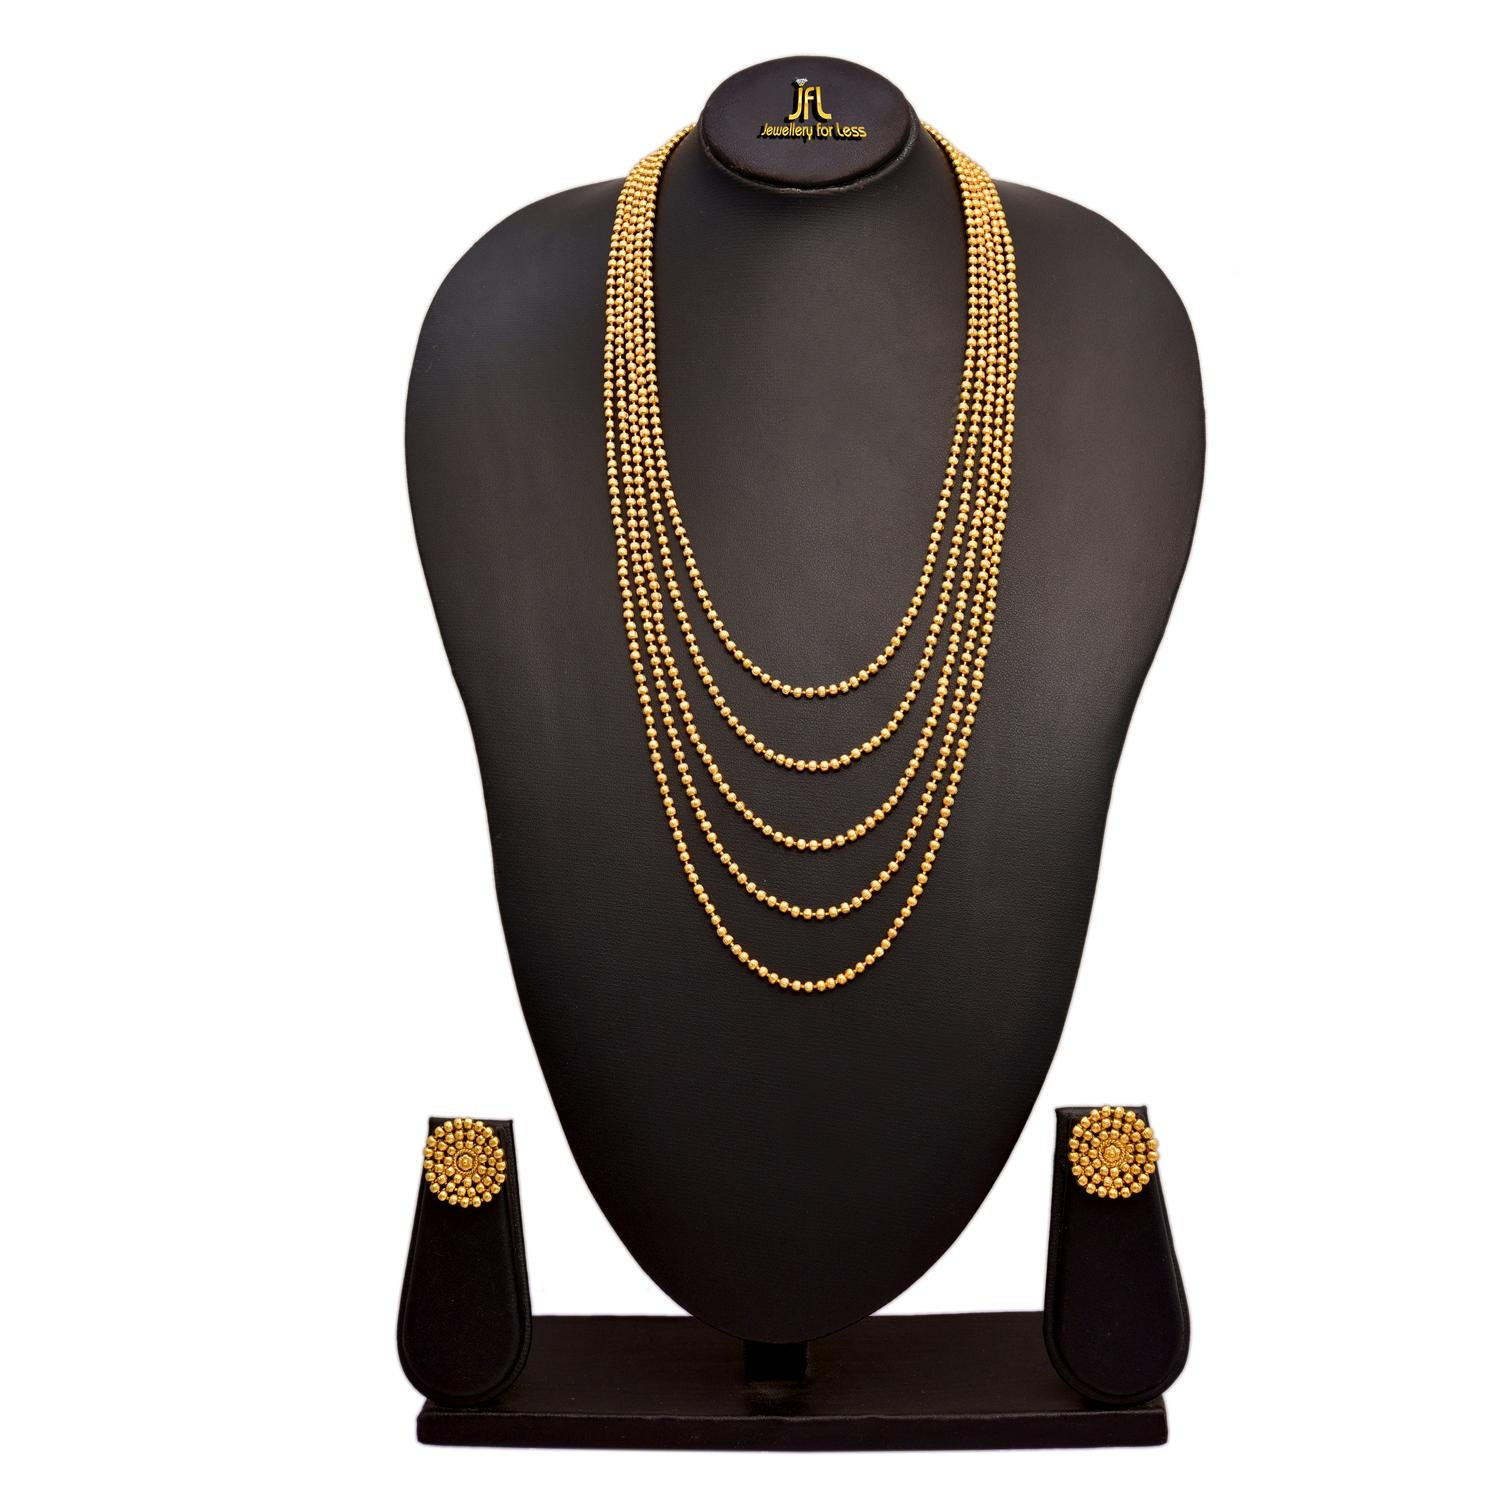 Jewellery For Less Traditional Ethnic One Gram Gold Plated Bead Designer Long Necklace Set With Earrings For Women & Girls.